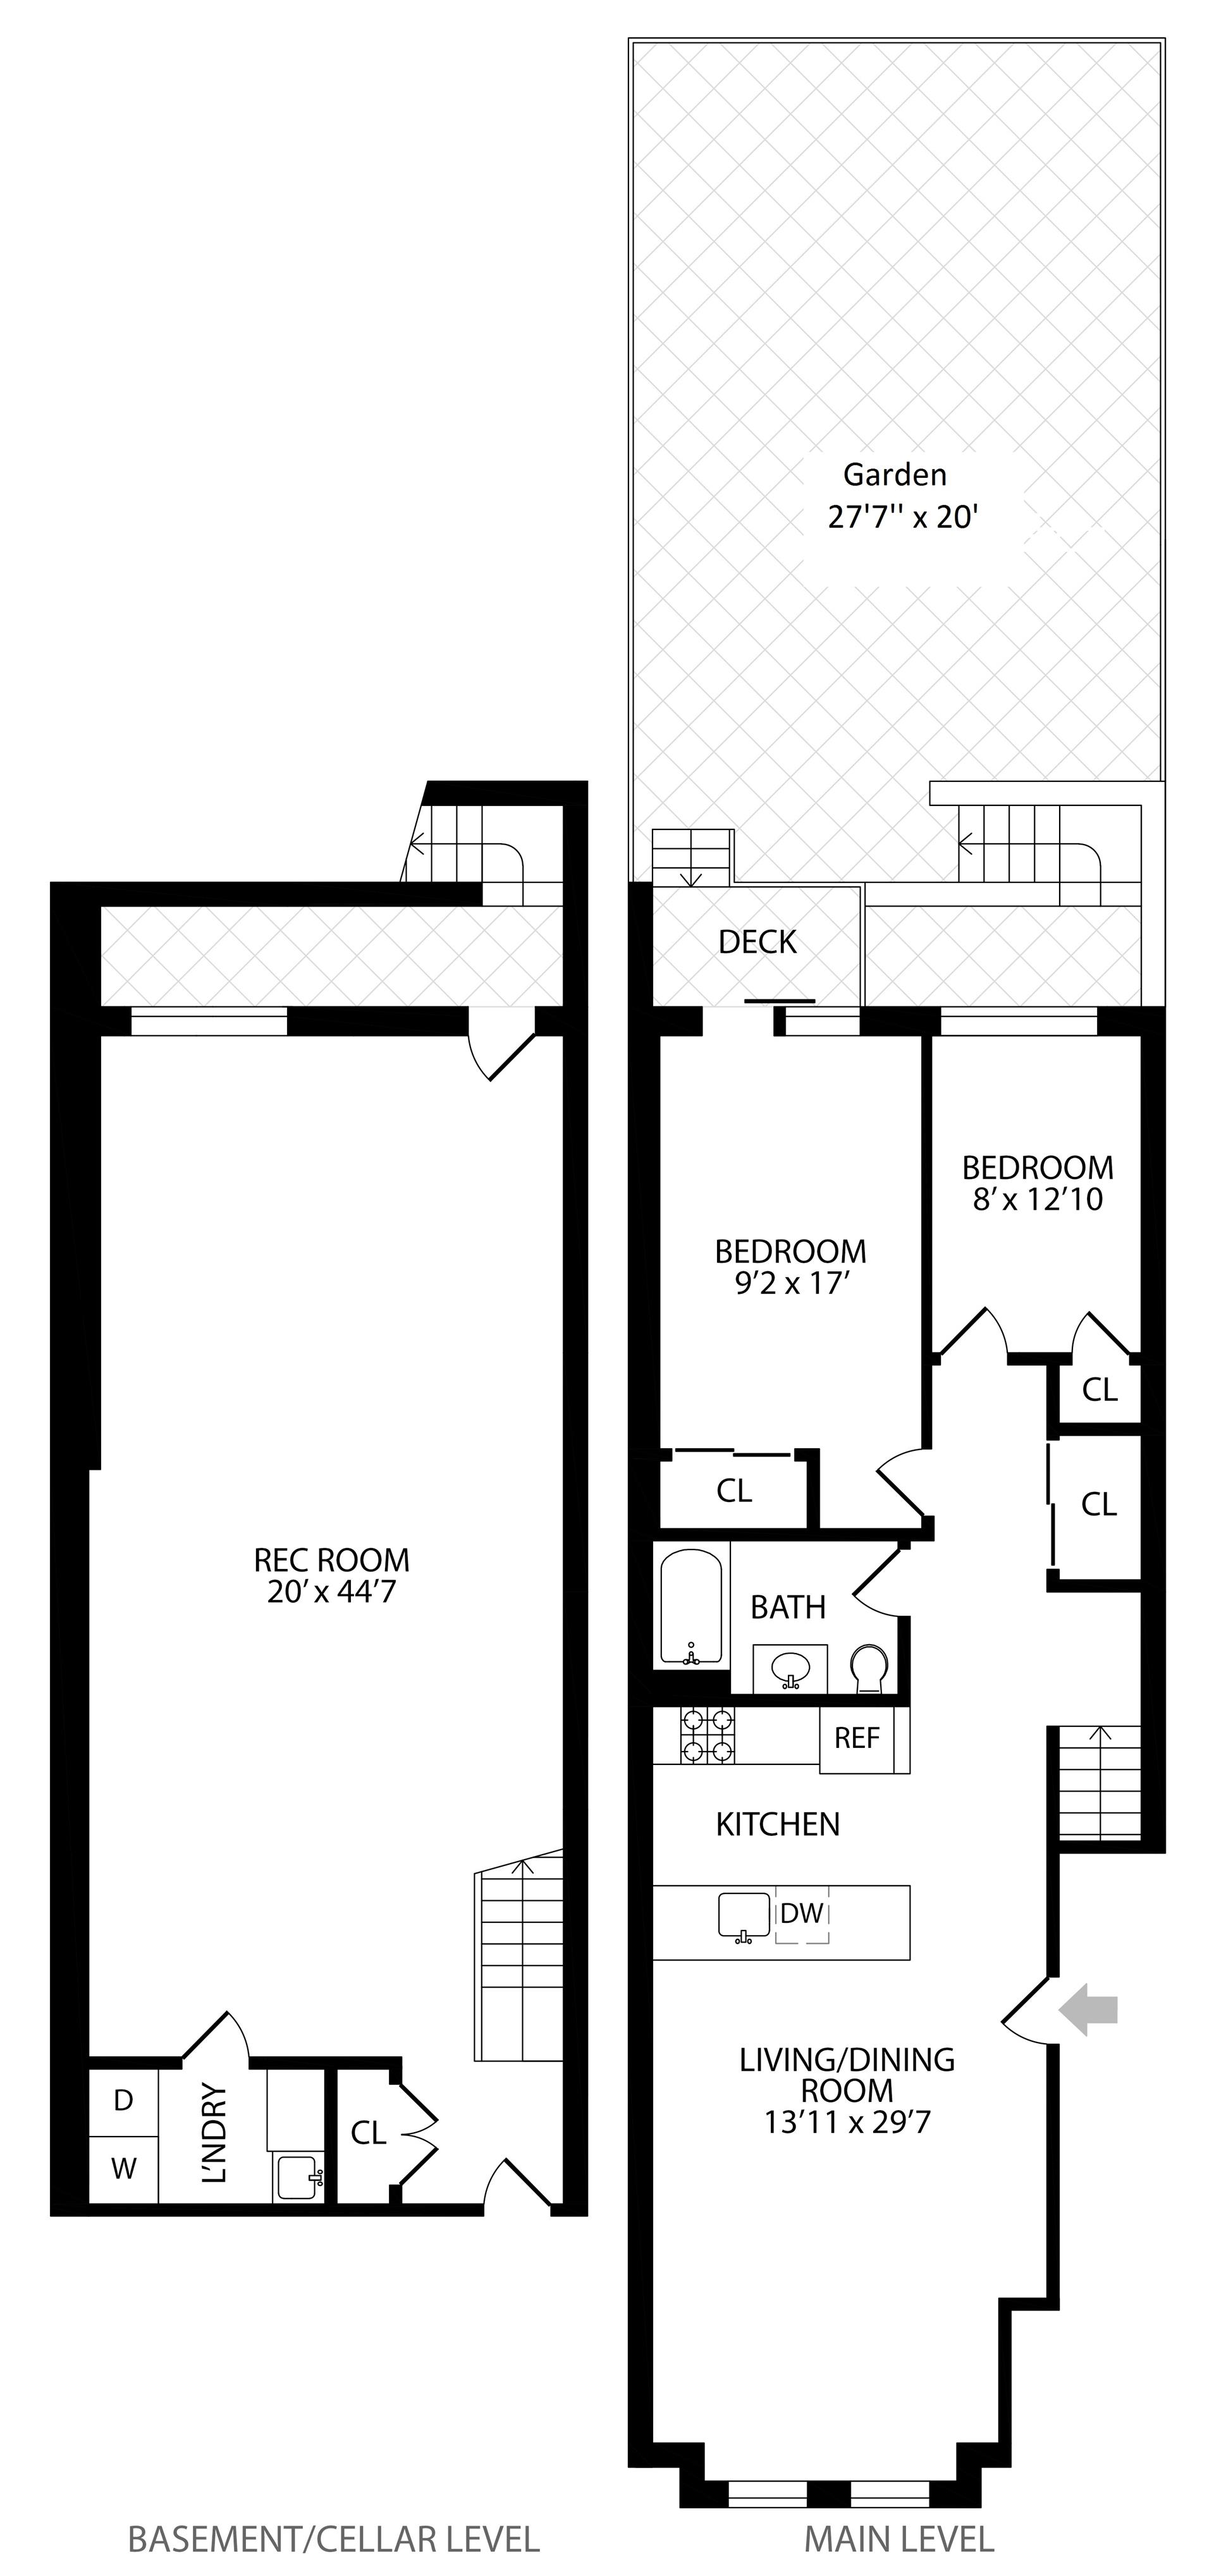 Floor plan of 770 Putnam Avenue, 1A - Bedford - Stuyvesant, New York